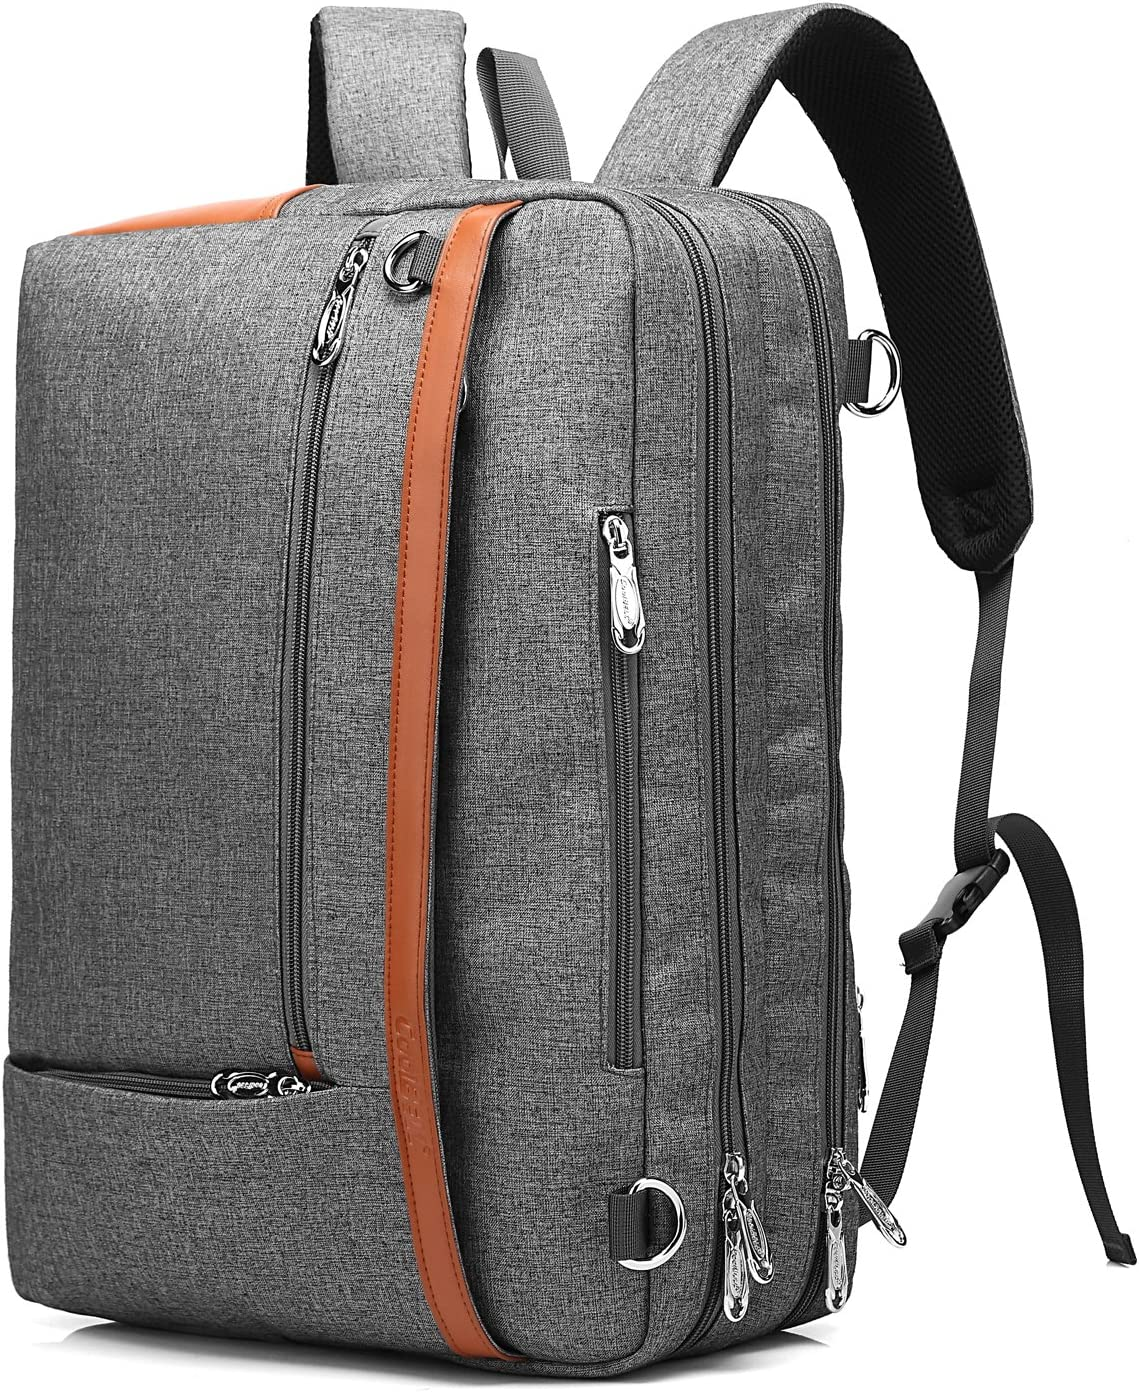 CoolBELL Convertible Backpack Shoulder bag Messenger Bag Laptop Case Business Briefcase Leisure Handbag Multi-functional Travel Rucksack Fits 15.6 Inch Laptop For Men/Women (Grey)